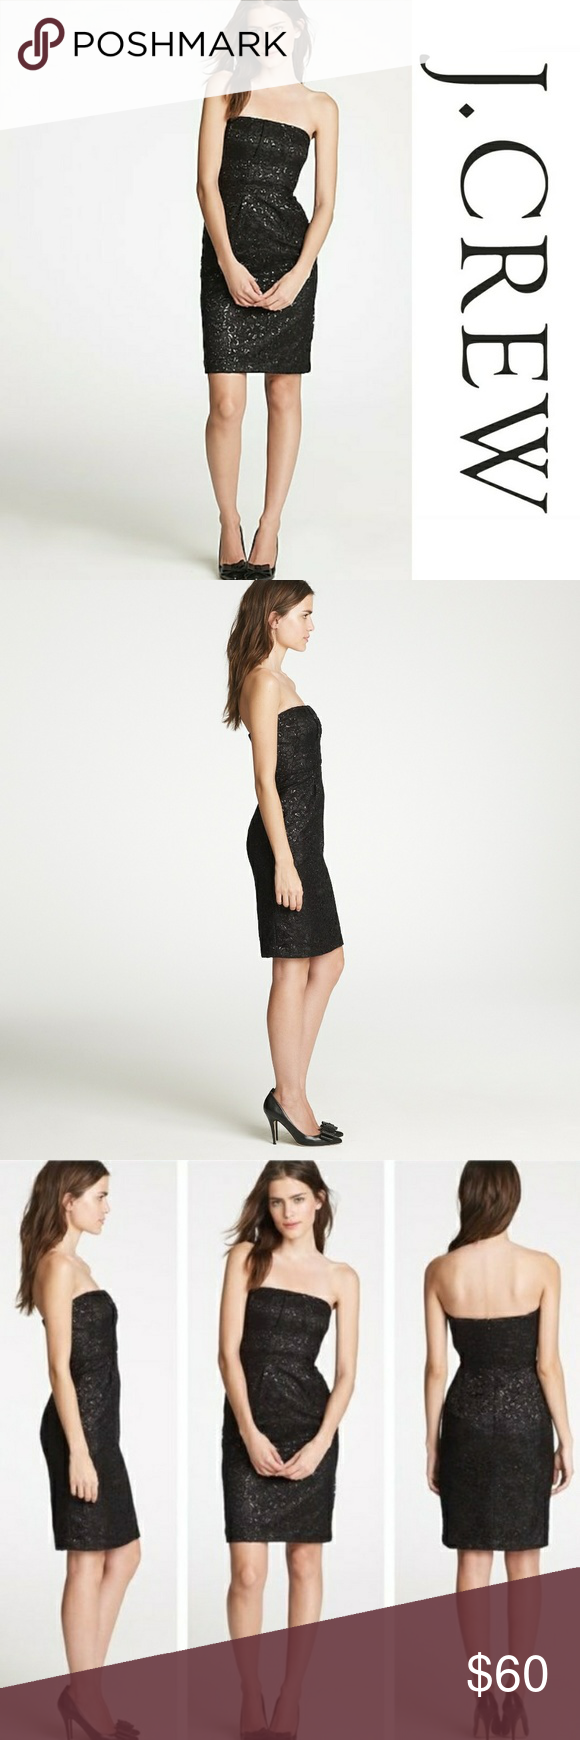 cb66f04651bd5 J Crew Tinsel Lace Dress Beautiful black lace strapless dress with metallic  threads woven into the